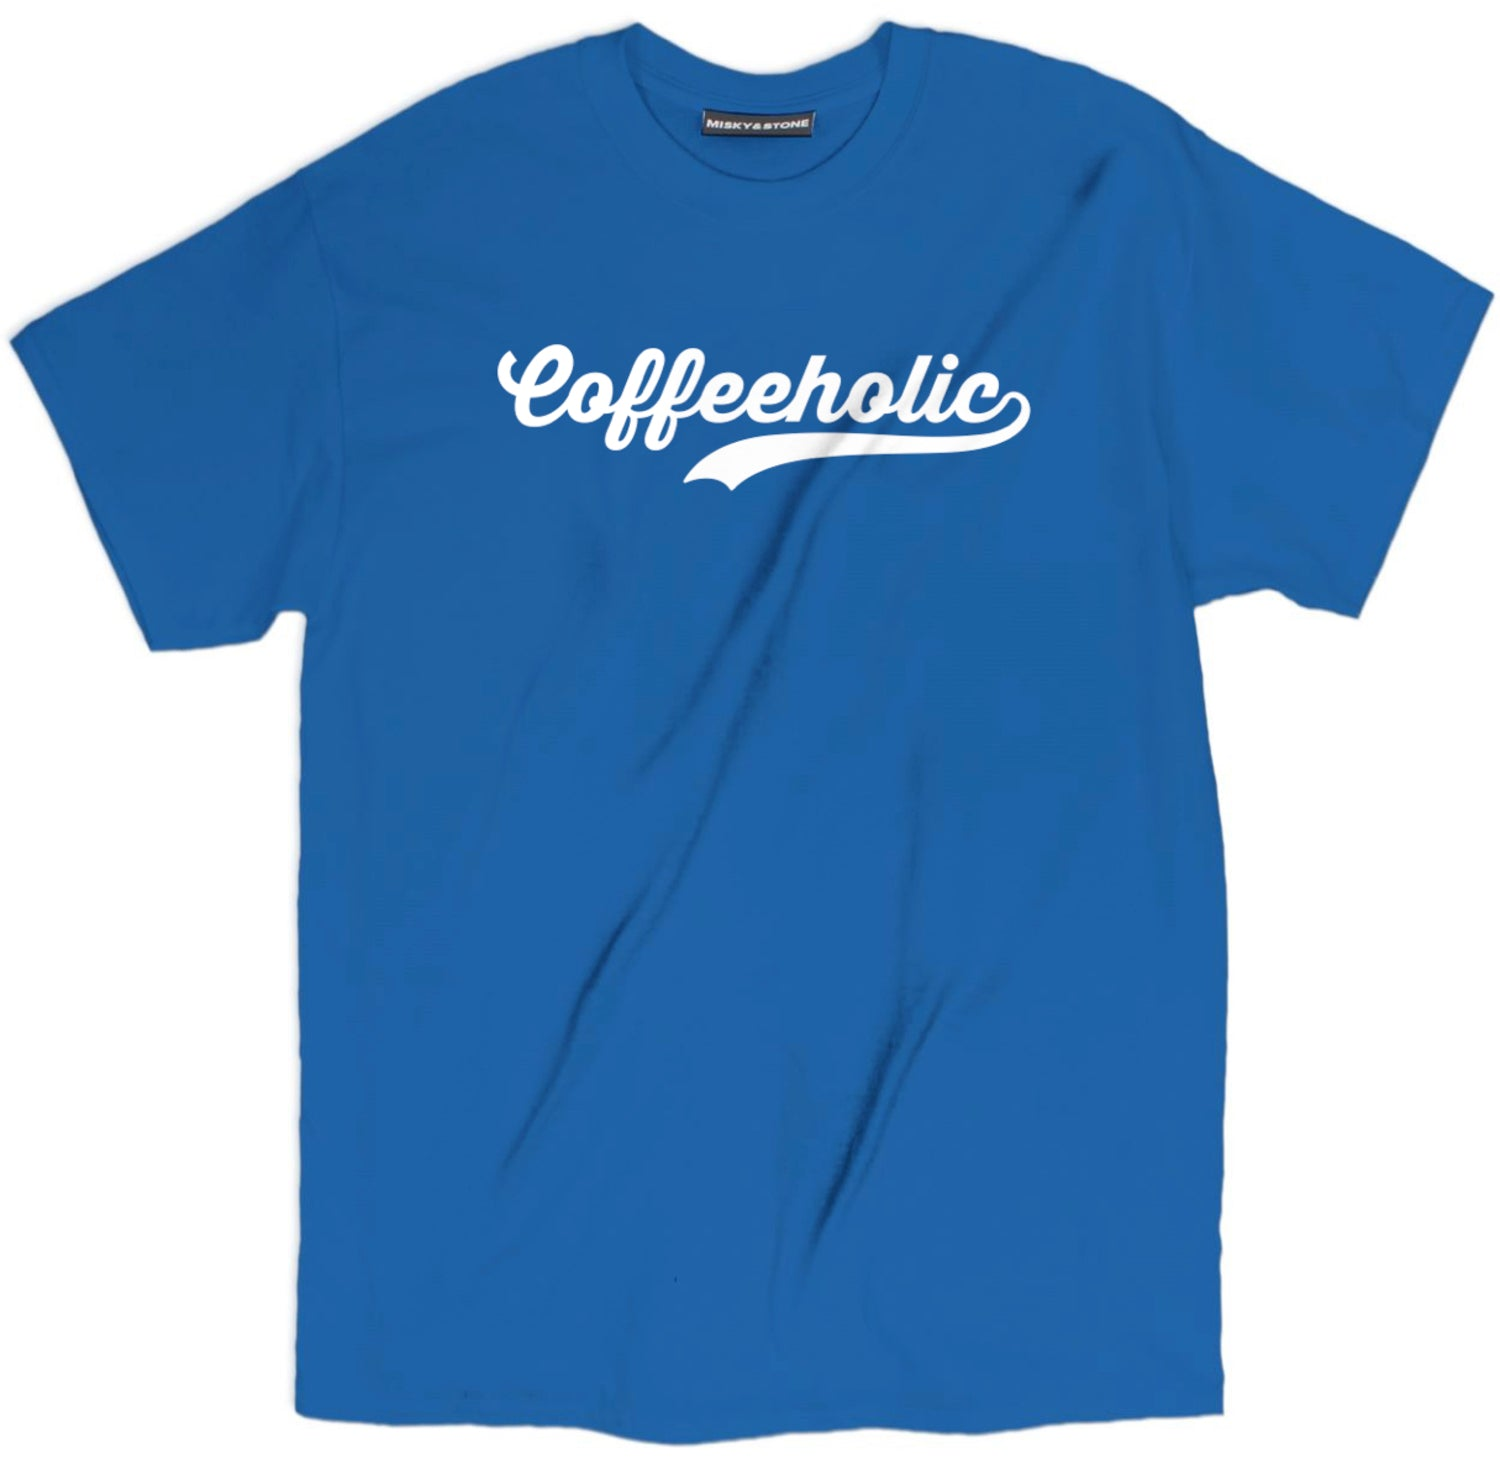 Coffeeholic T Shirt